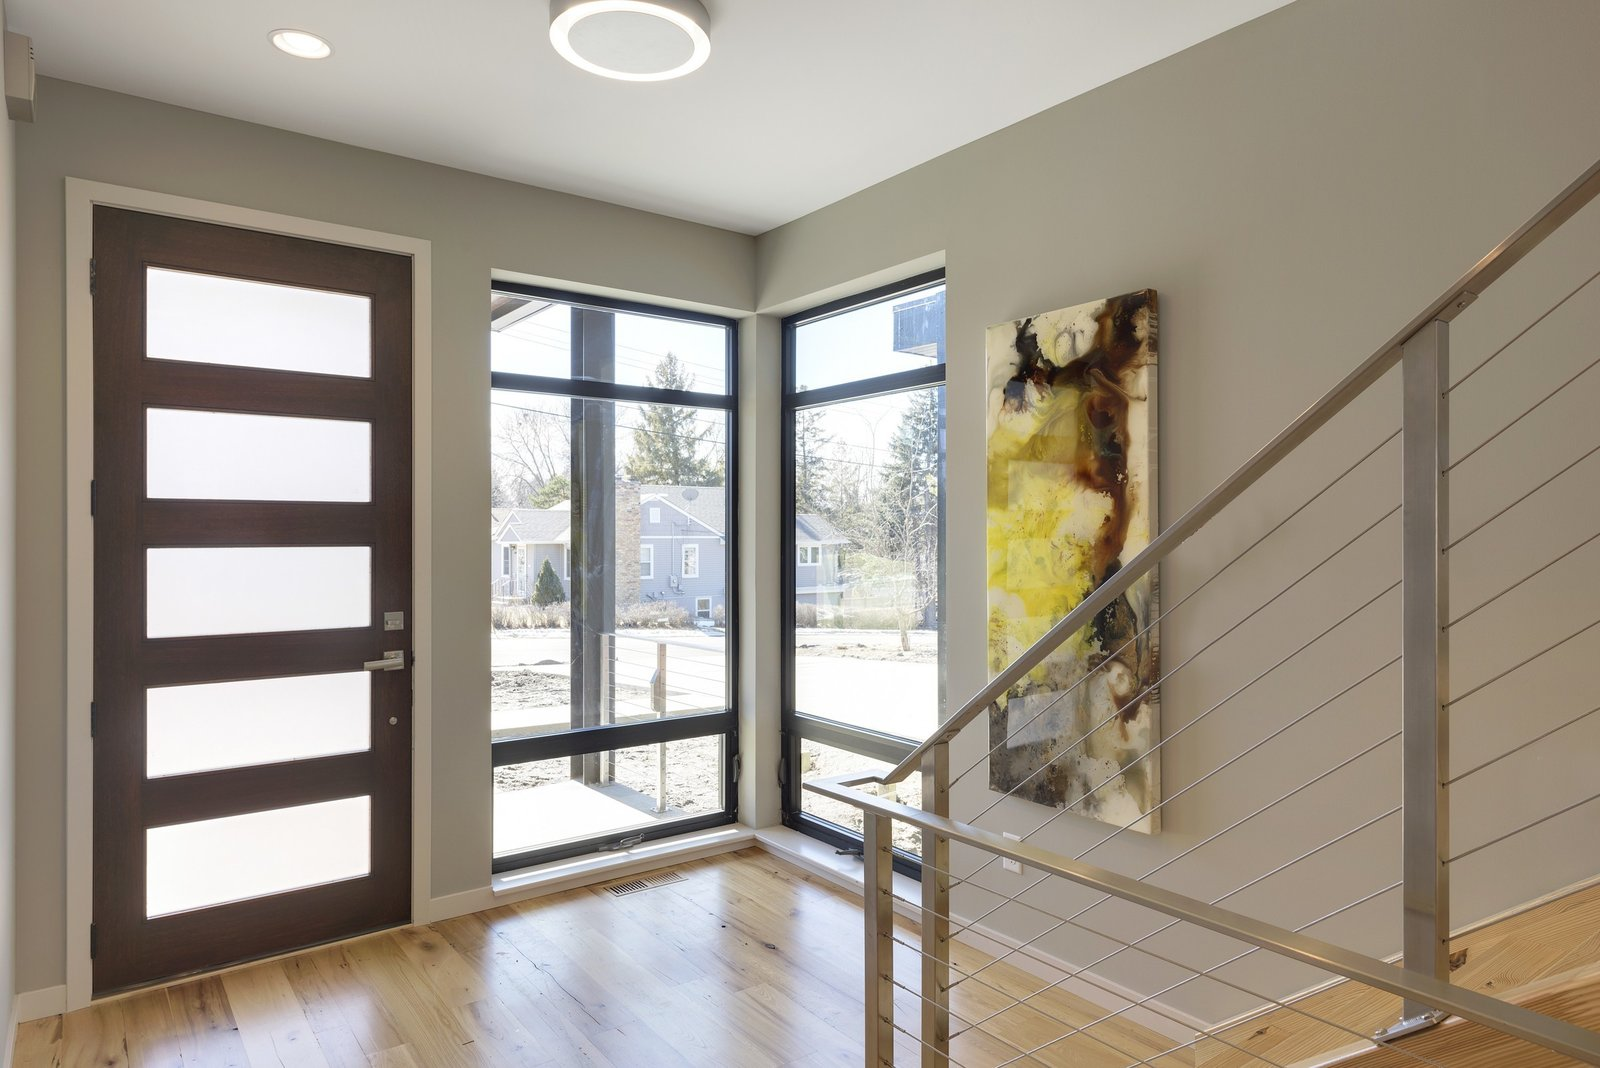 """Photo 4 of 11 in Minneapolis Modern """"Dream Home"""" Built by Sustainable 9 Design + Build"""